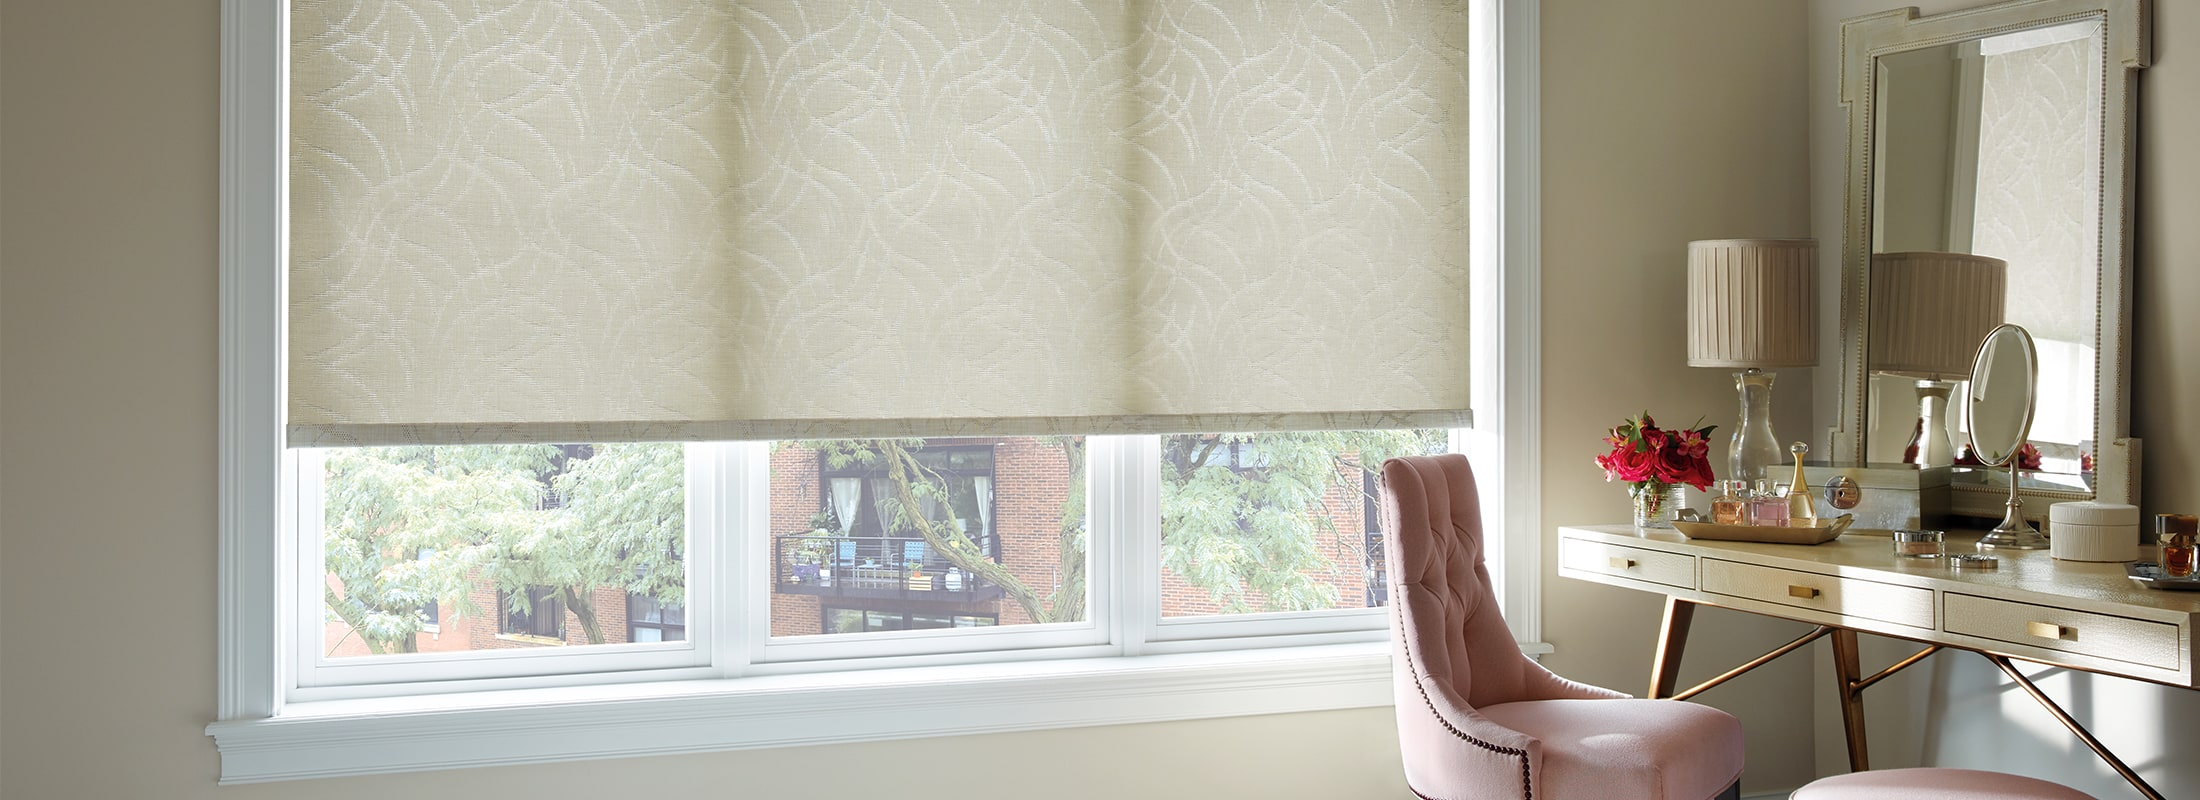 Fabric Roller Shades : Designer roller shades fabric hunter douglas